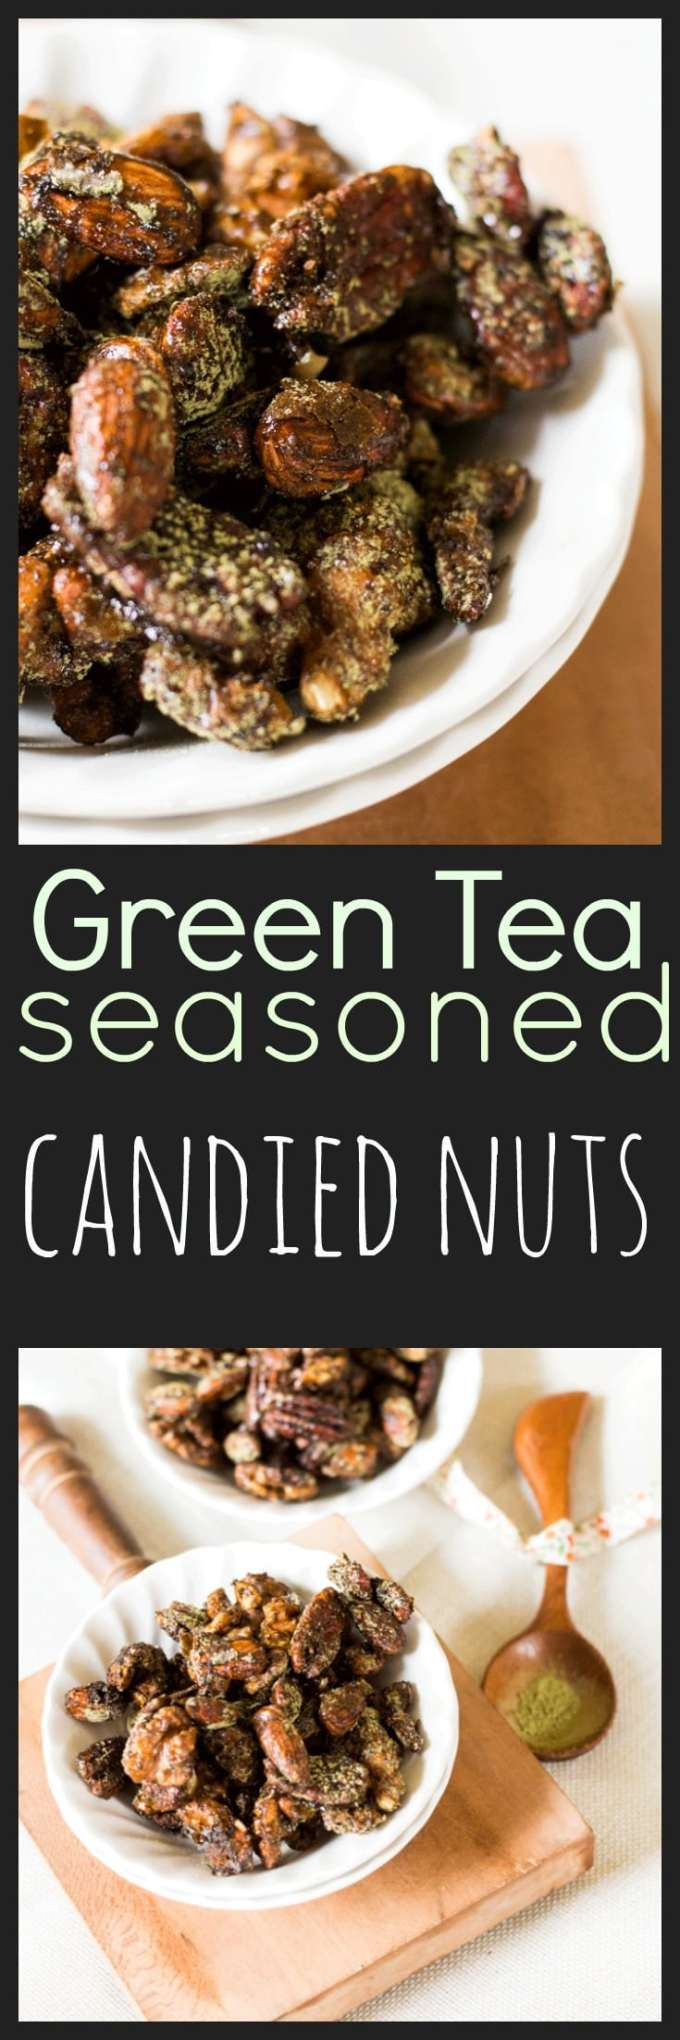 Snacking just reached a whole new level of awesome with these Green Tea Seasoned Candied Nuts. Crunchy, sweet and delicious with an antioxidant boost.